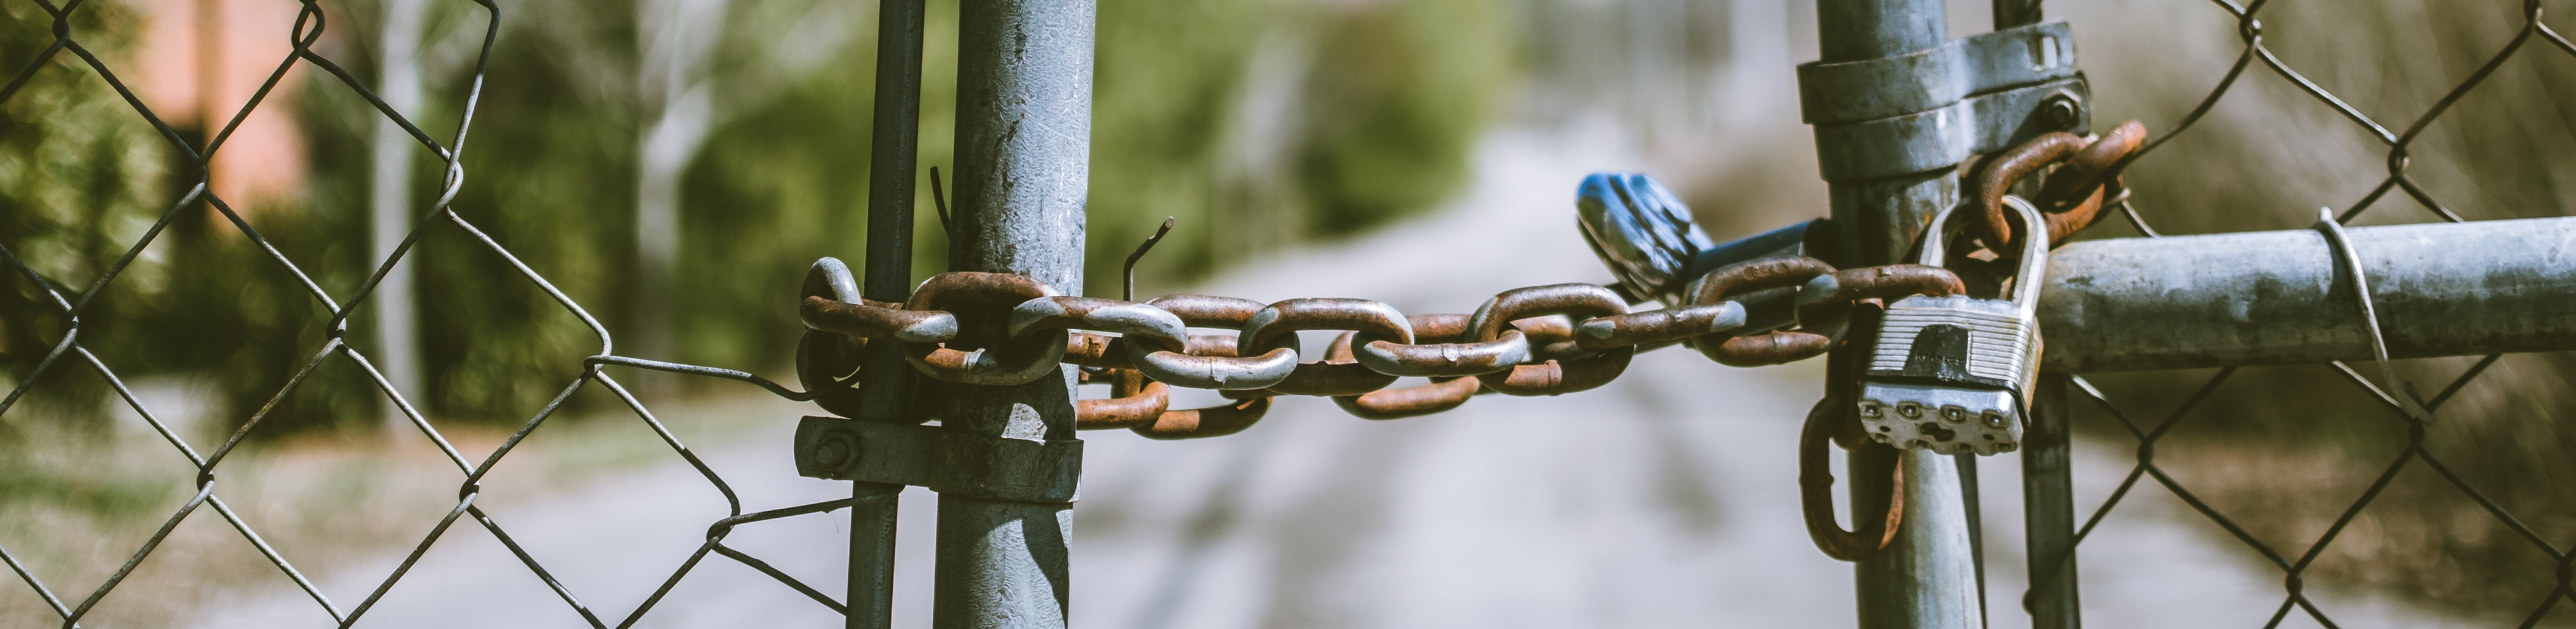 Chainlink gate held shut with a chain and padlock><br></p><p></p><p><br></p>